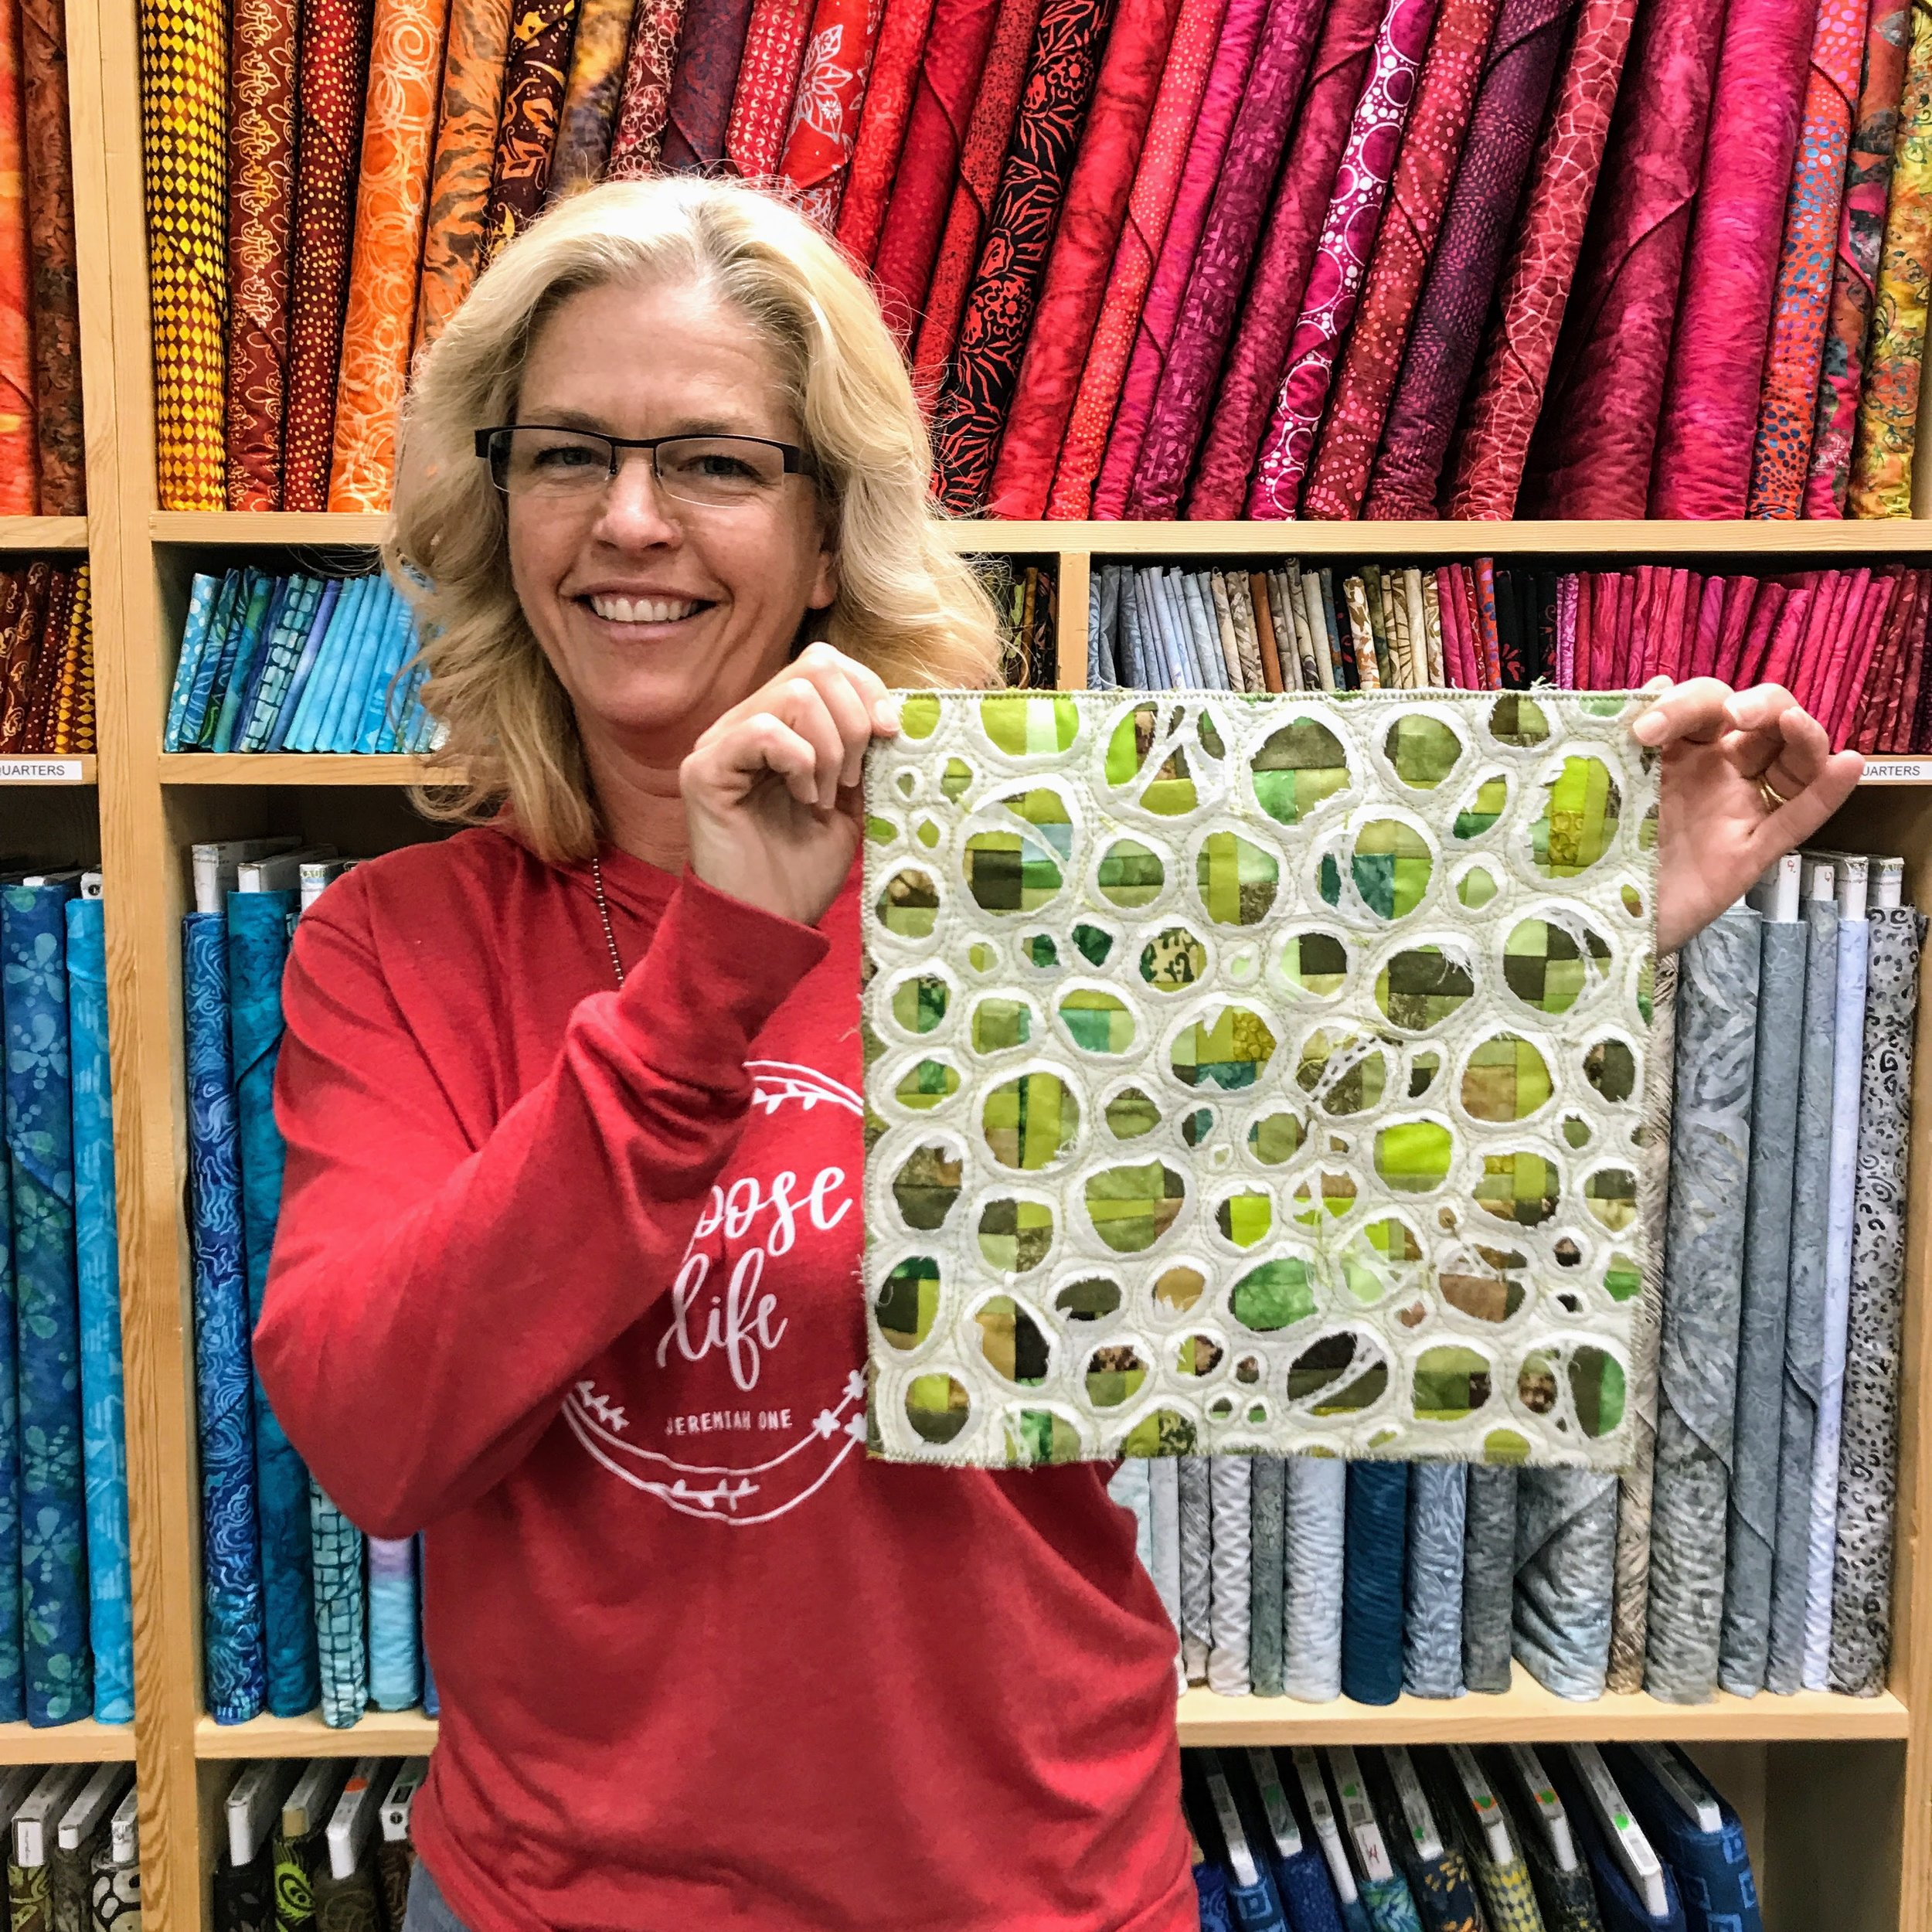 Sara Bradshaw made this mini quilt for SAQA's benefit auction. She was inspired by photos of amphibian eggs shared by fellow member Audrey Workman.